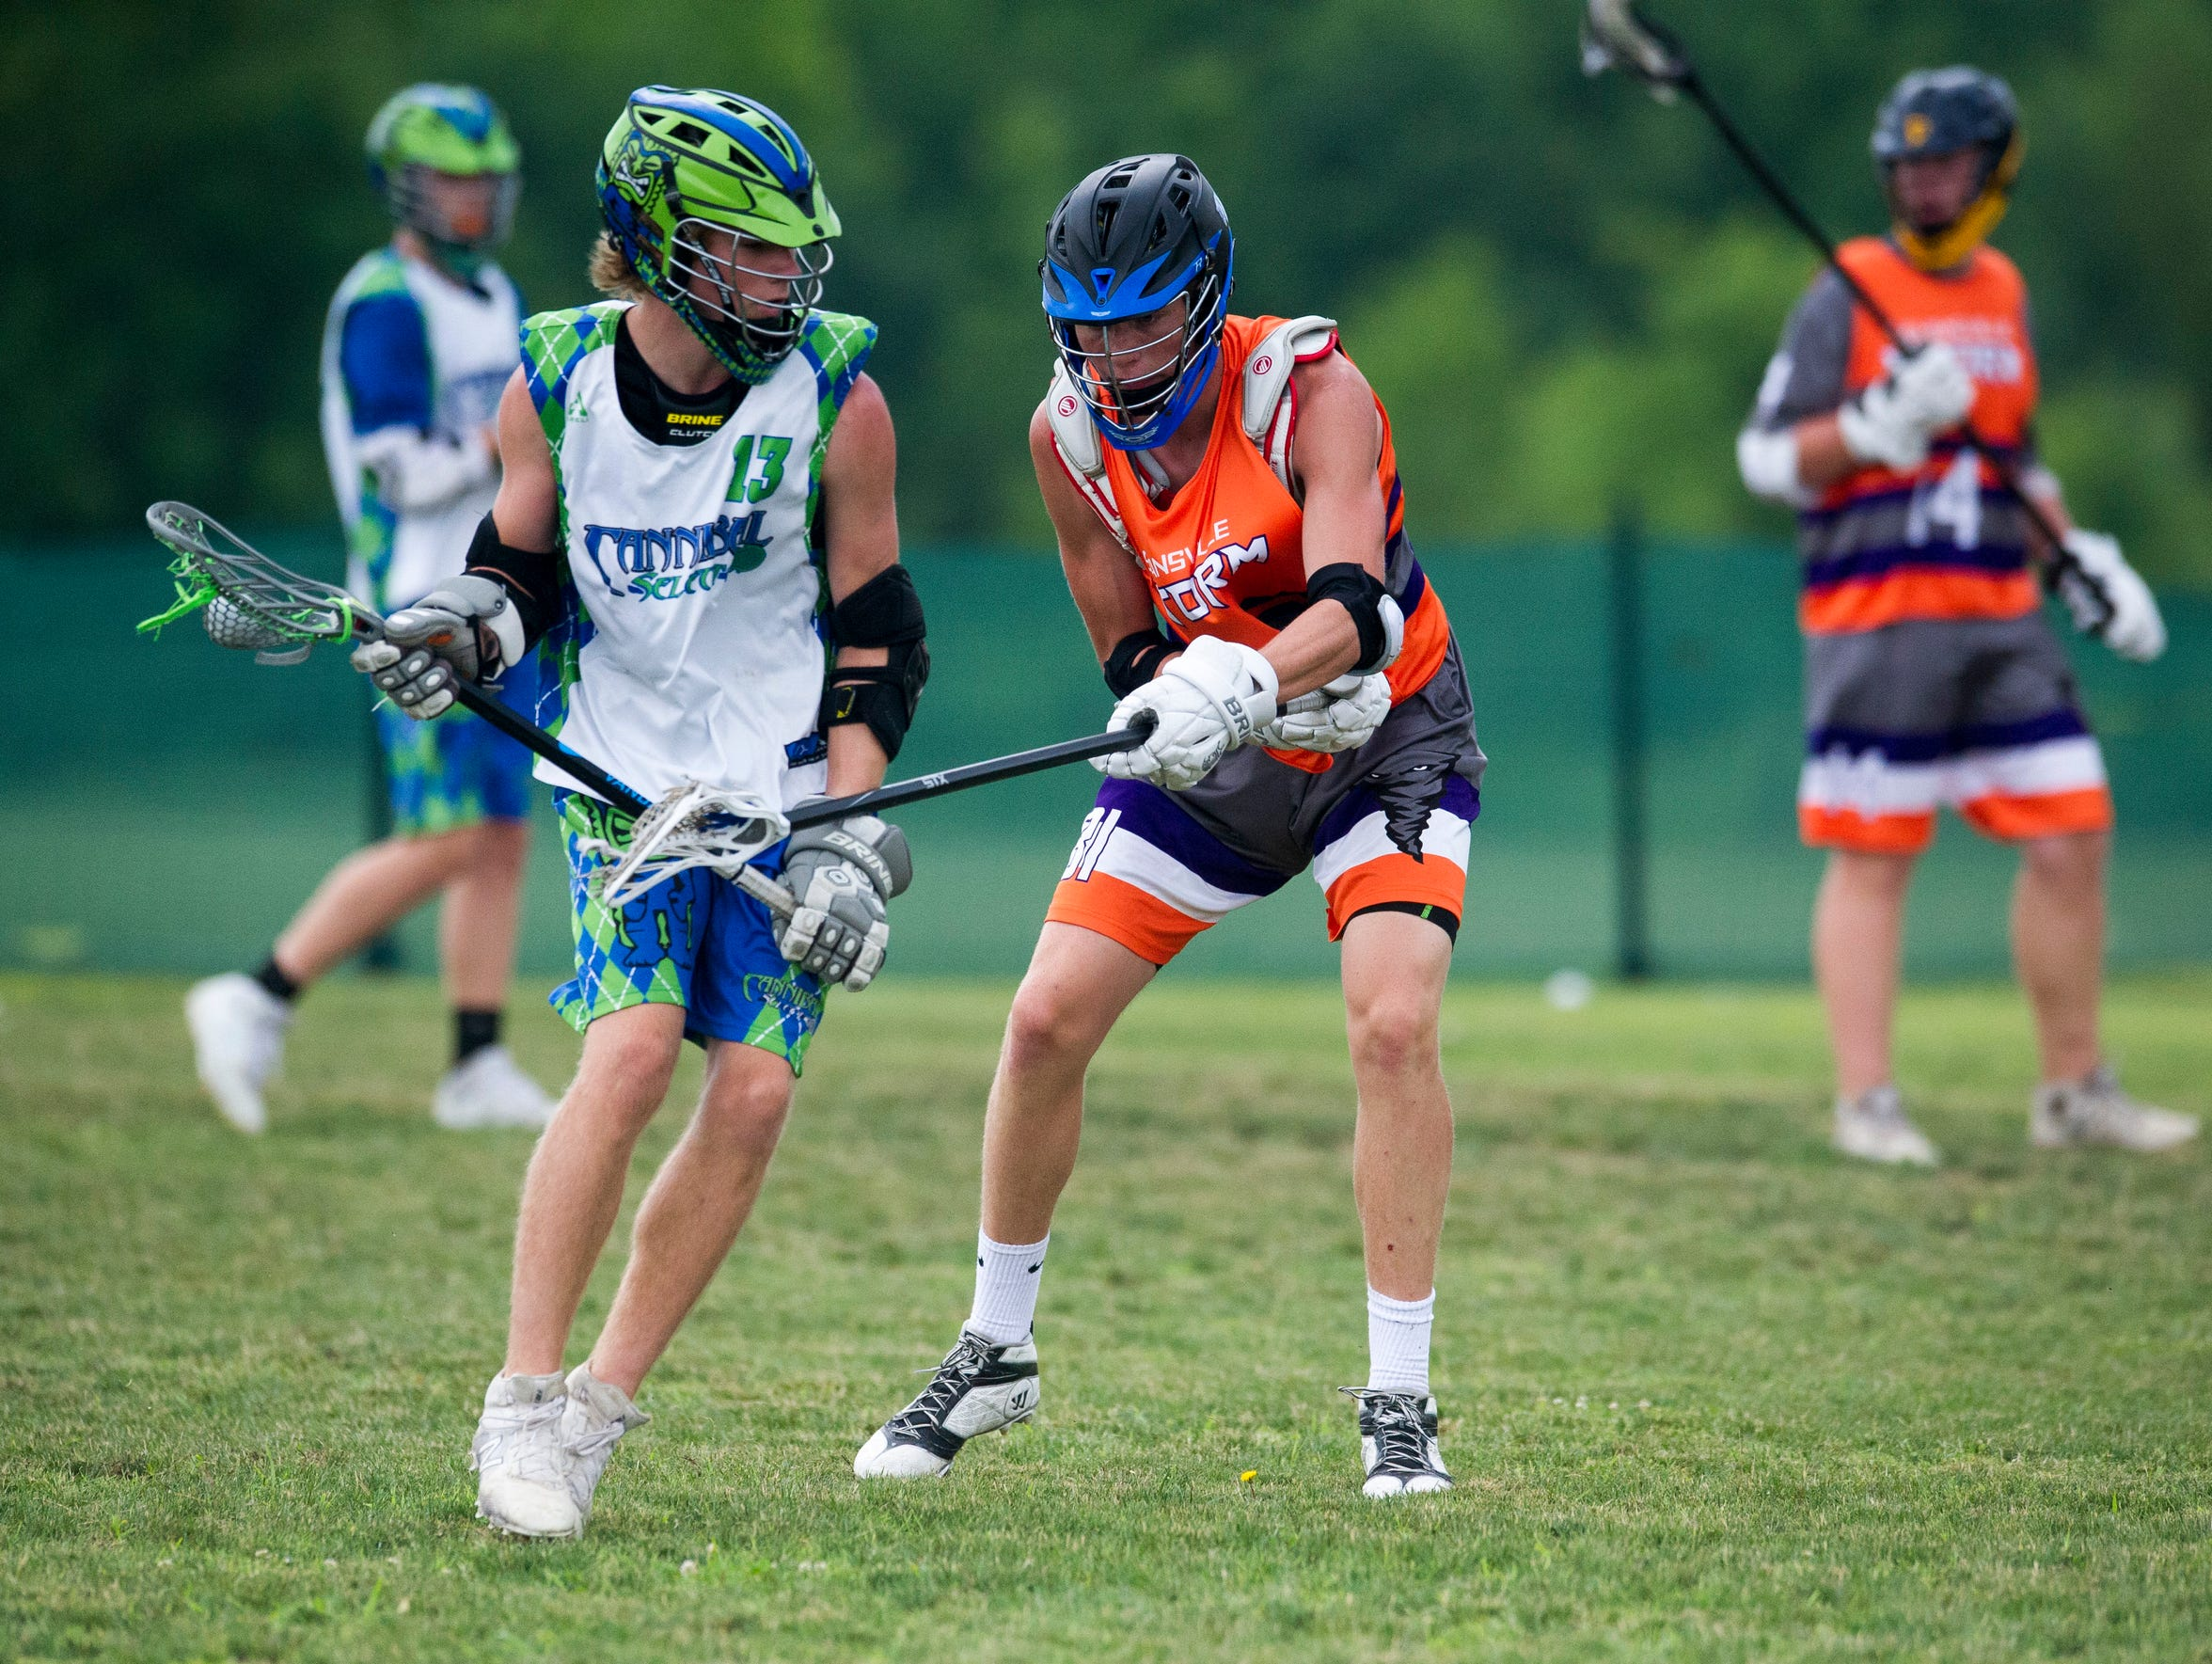 Eville Storm U19's Joseph W. stick checks a Cannibal